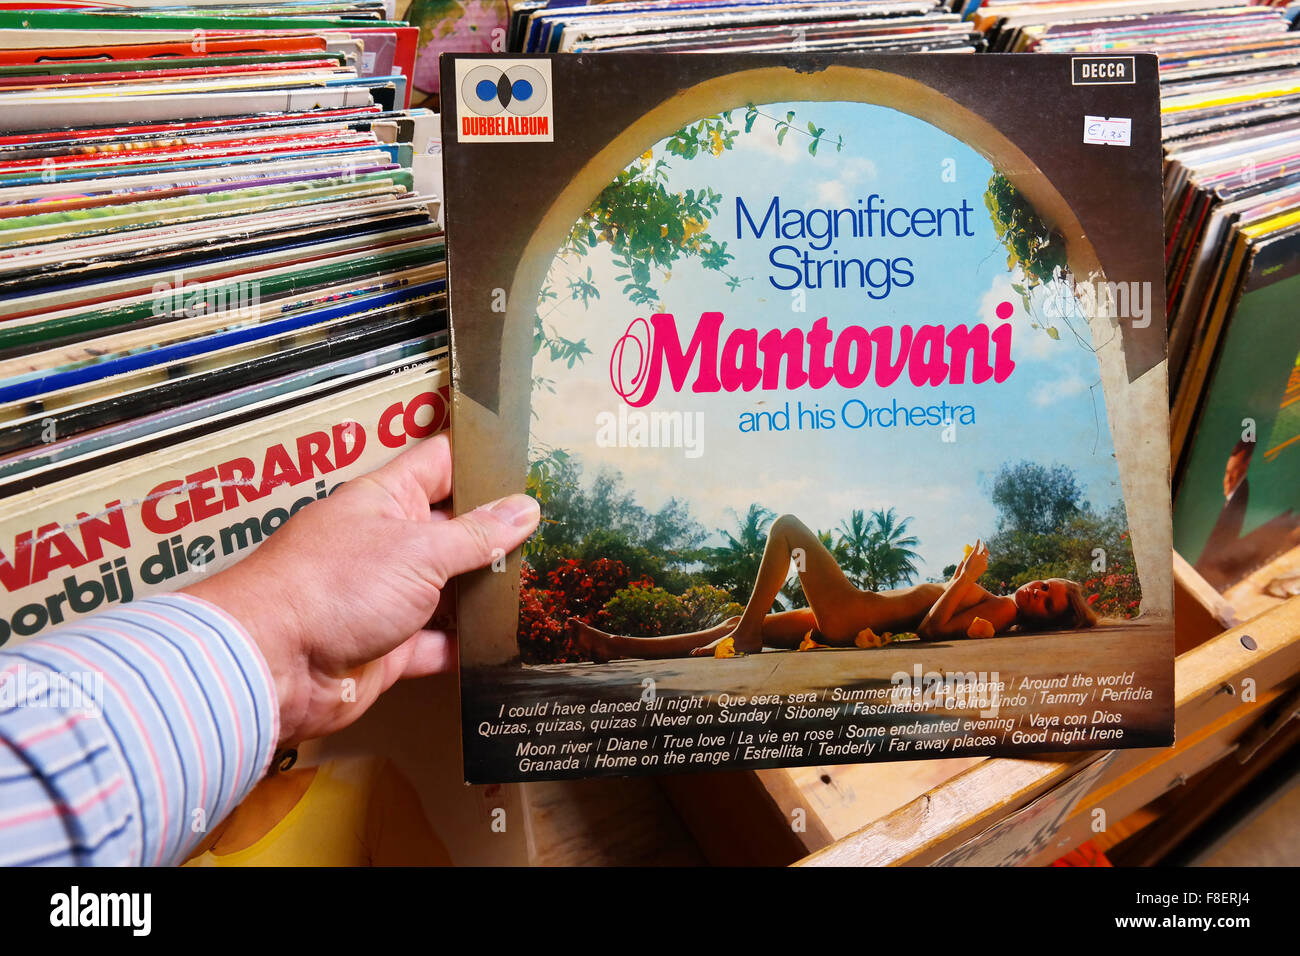 Mantovani and his Orchestra: Magnificent Strings - Stock Image